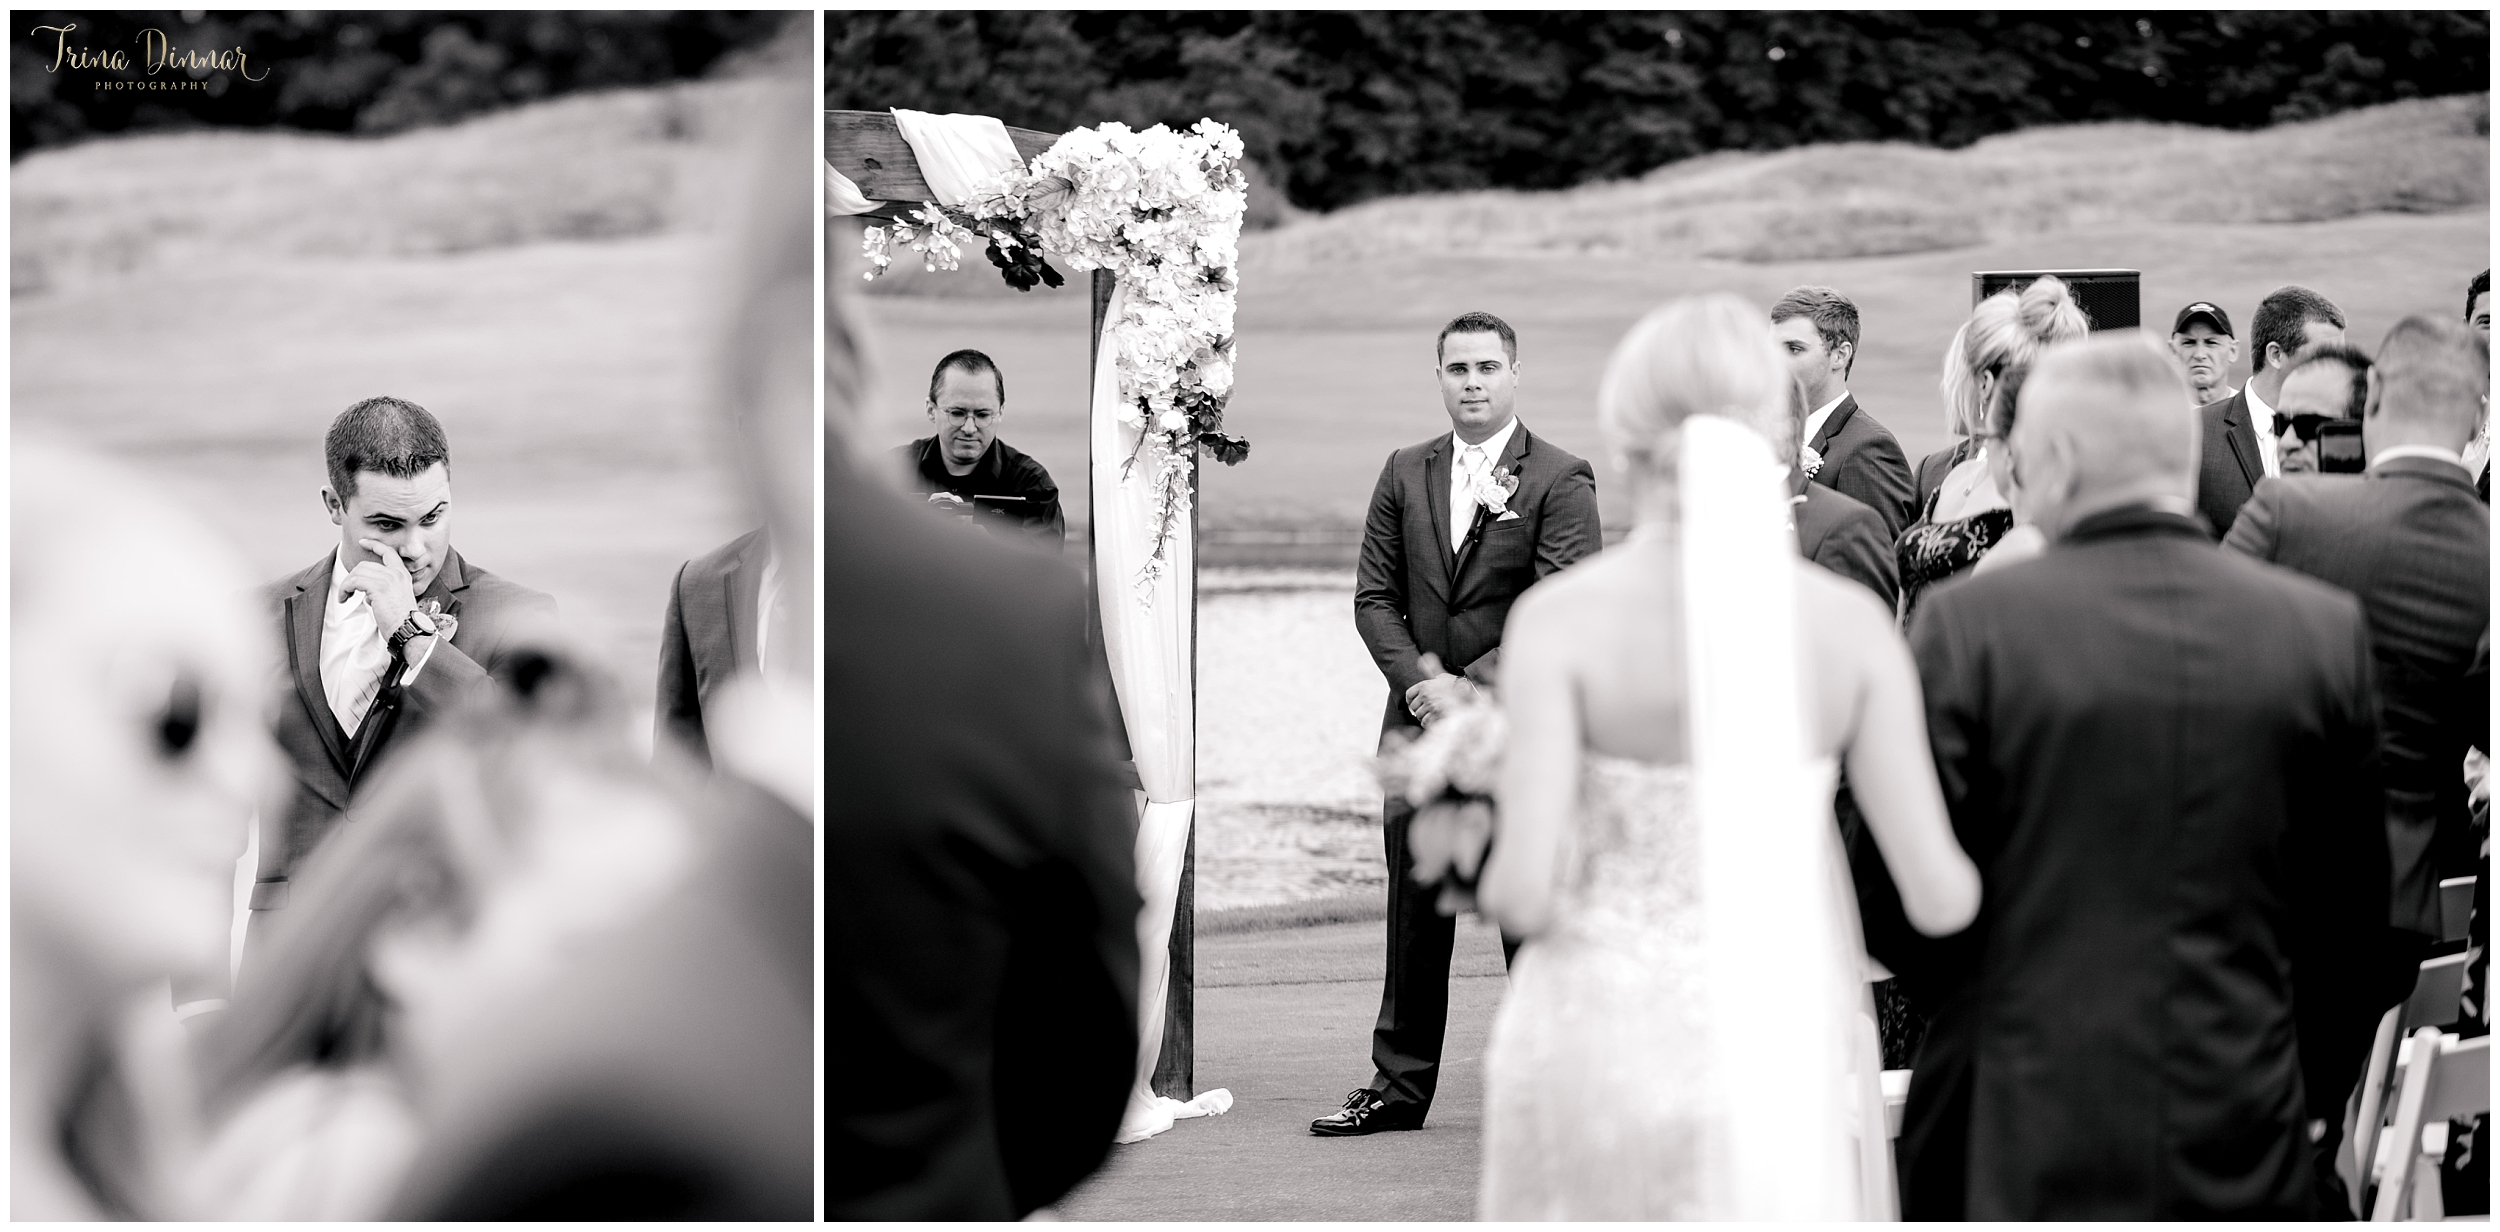 Groom tears up seeing bride walk down aisle